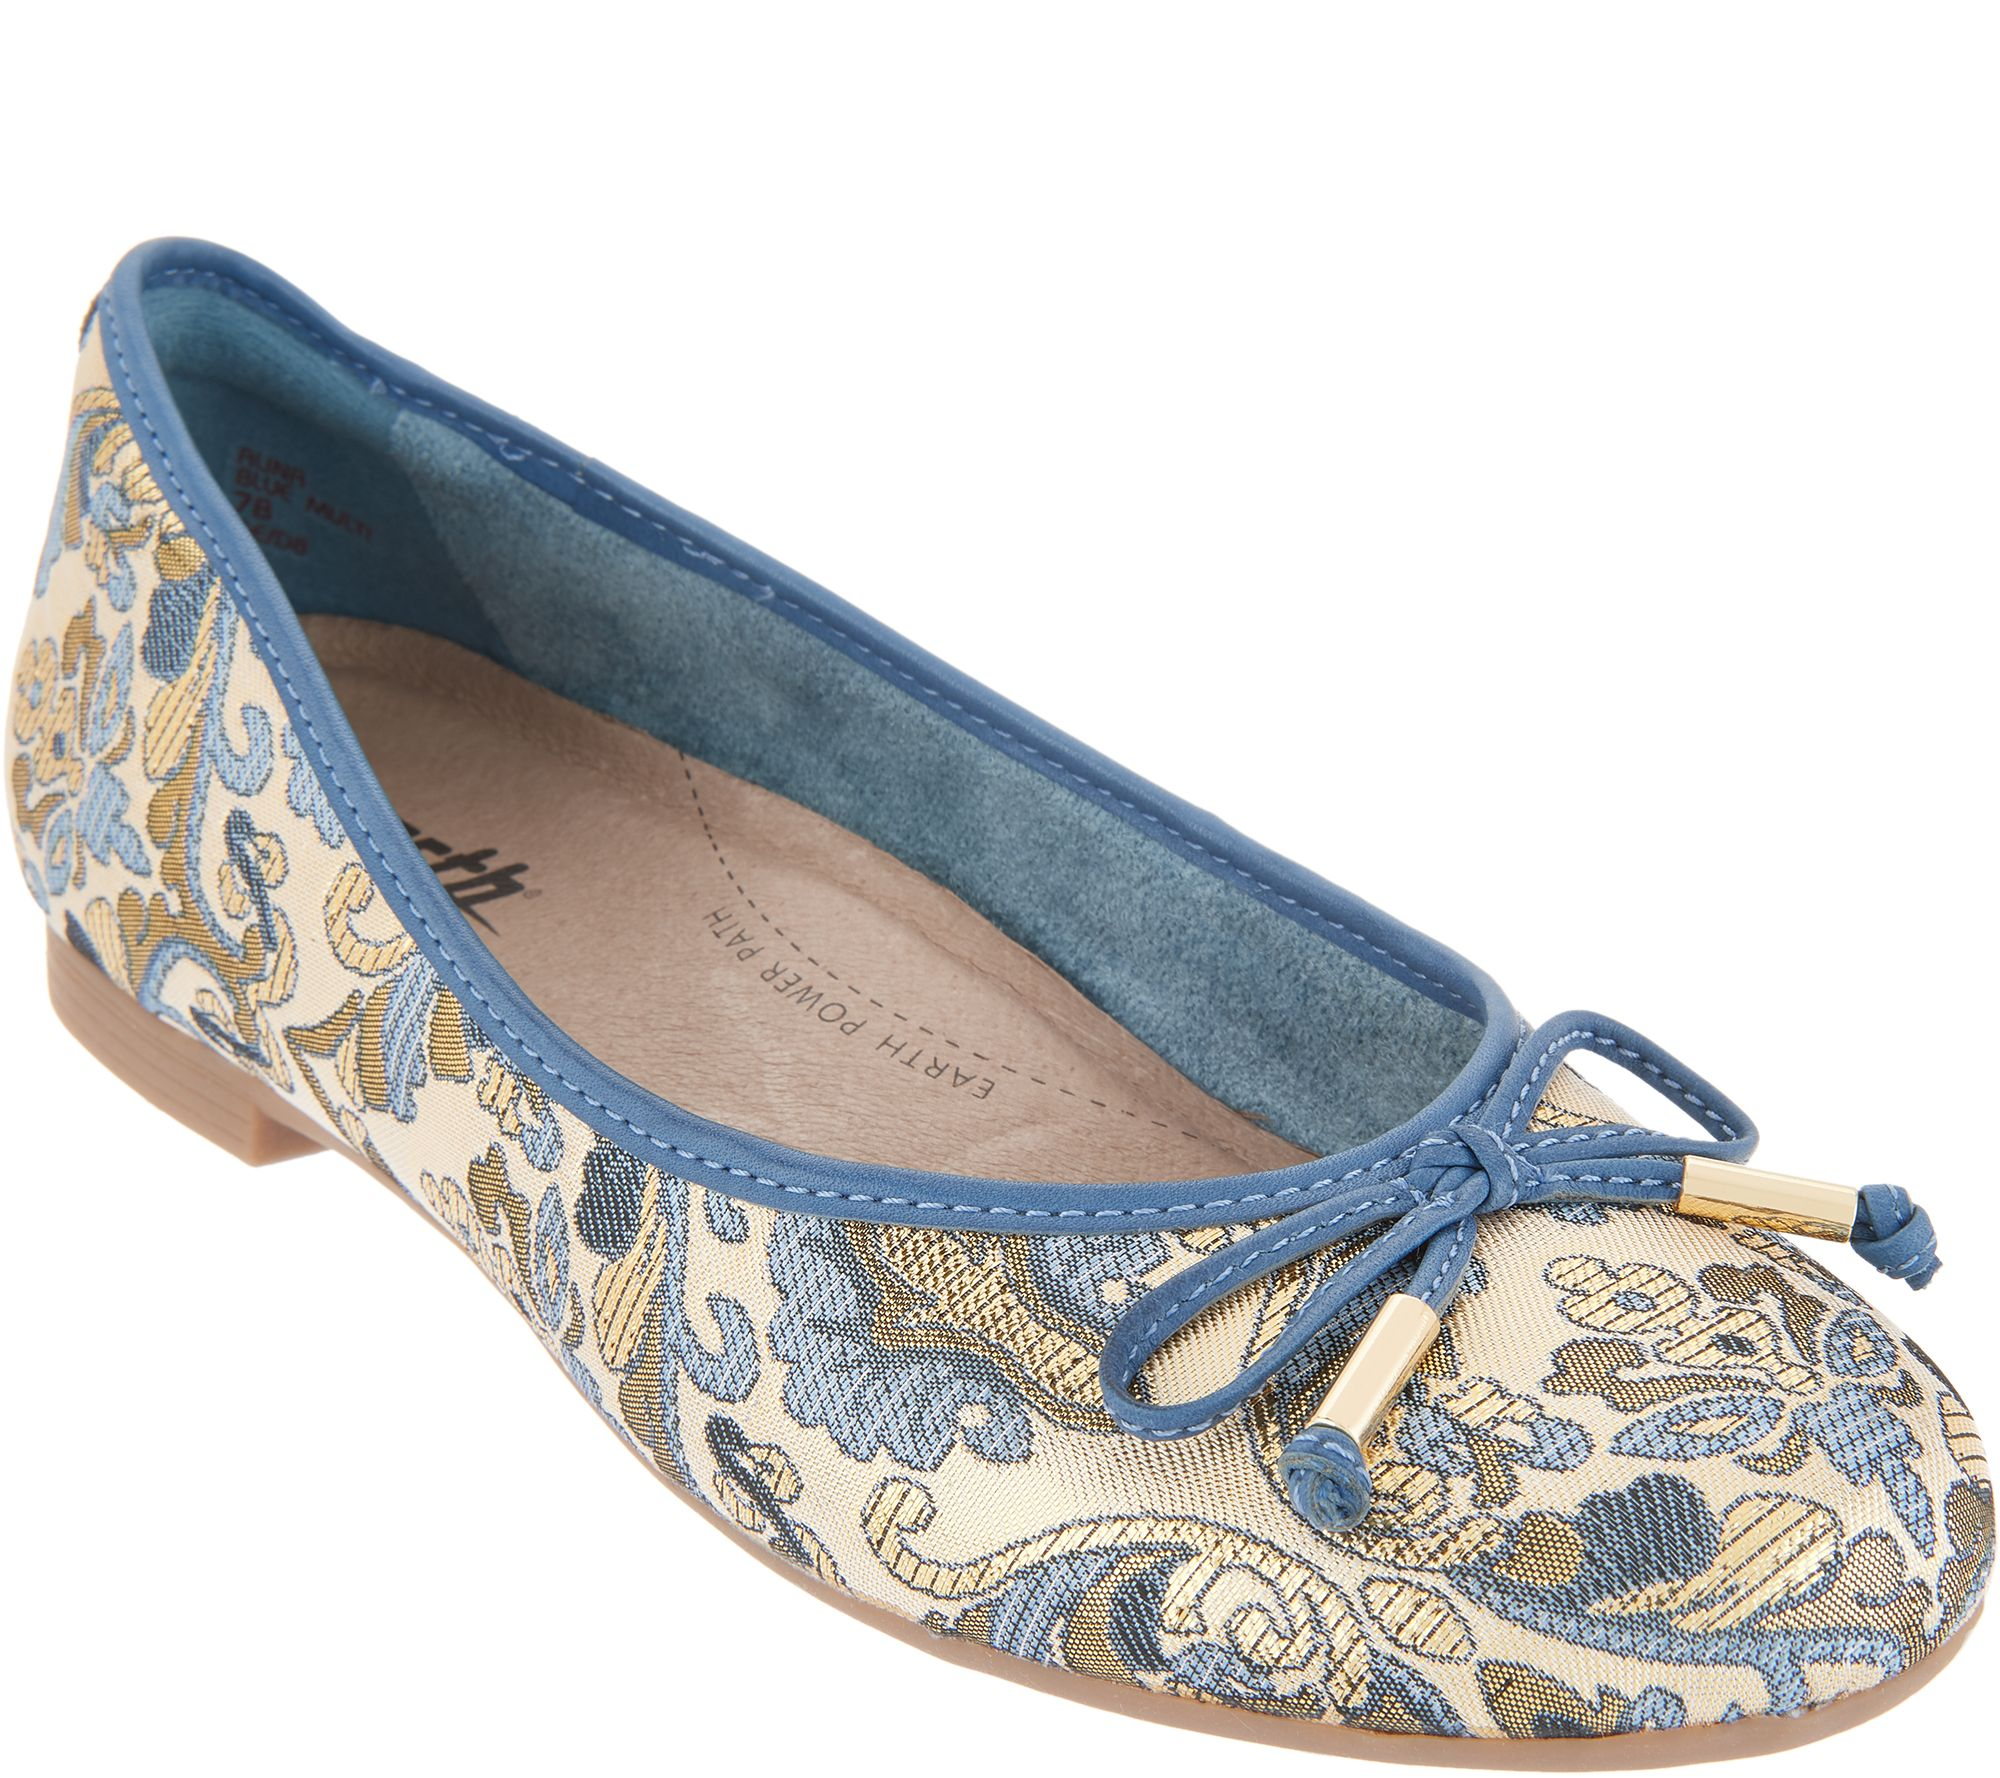 313ad211a0a8 Earth Slip-On Flats with Bow Detail - Alina - Page 1 — QVC.com